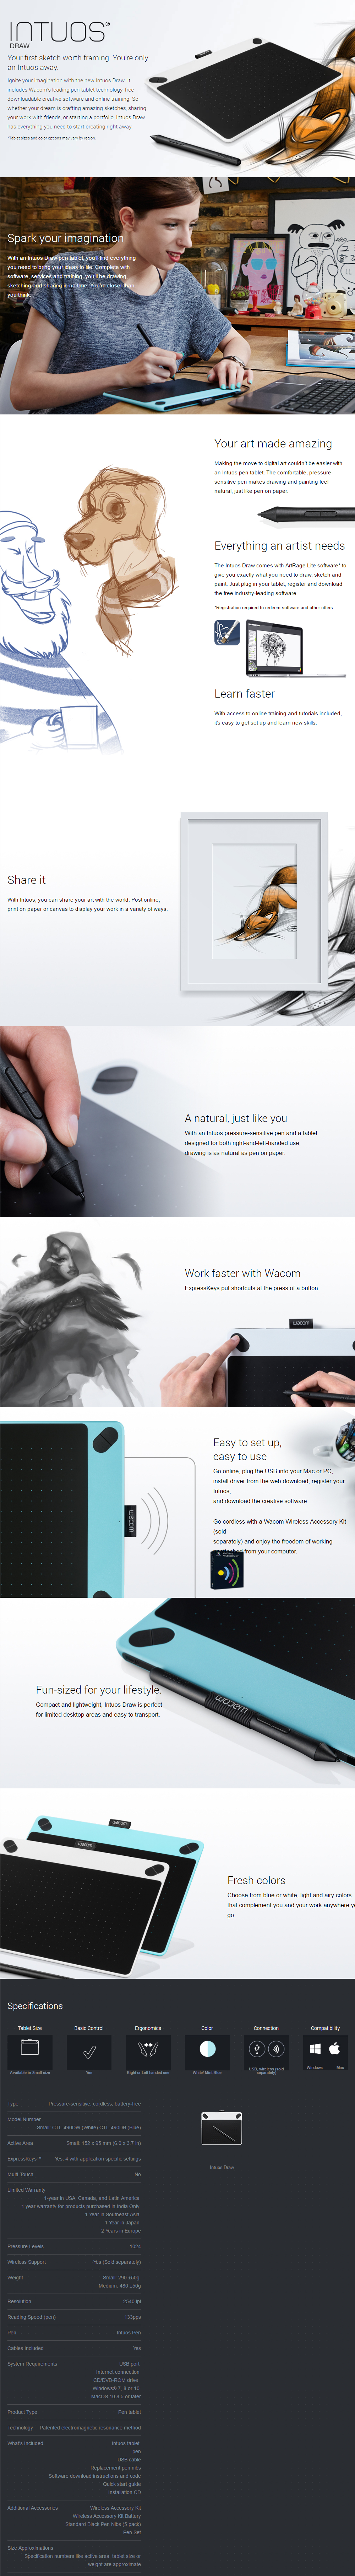 Tablets Graphic Wacom Intuos Draw Blue Wcm Ctl 490 B0 Overview